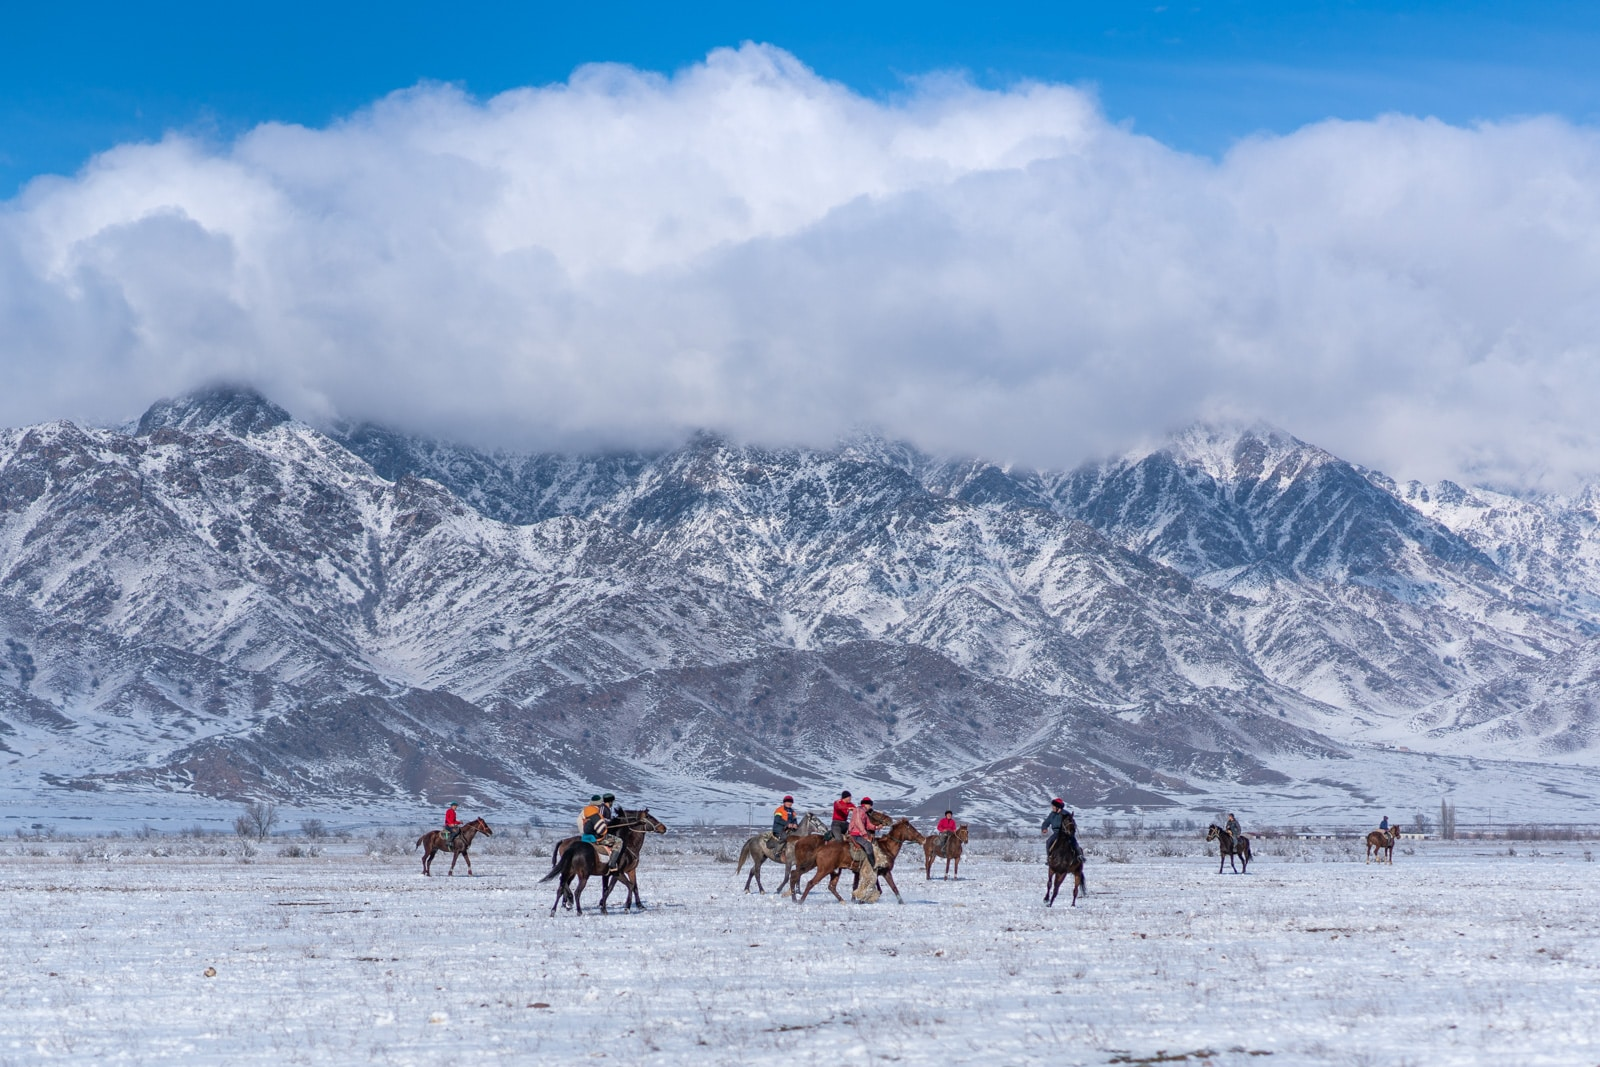 Kok buru match in mountains in Kyrgyzstan